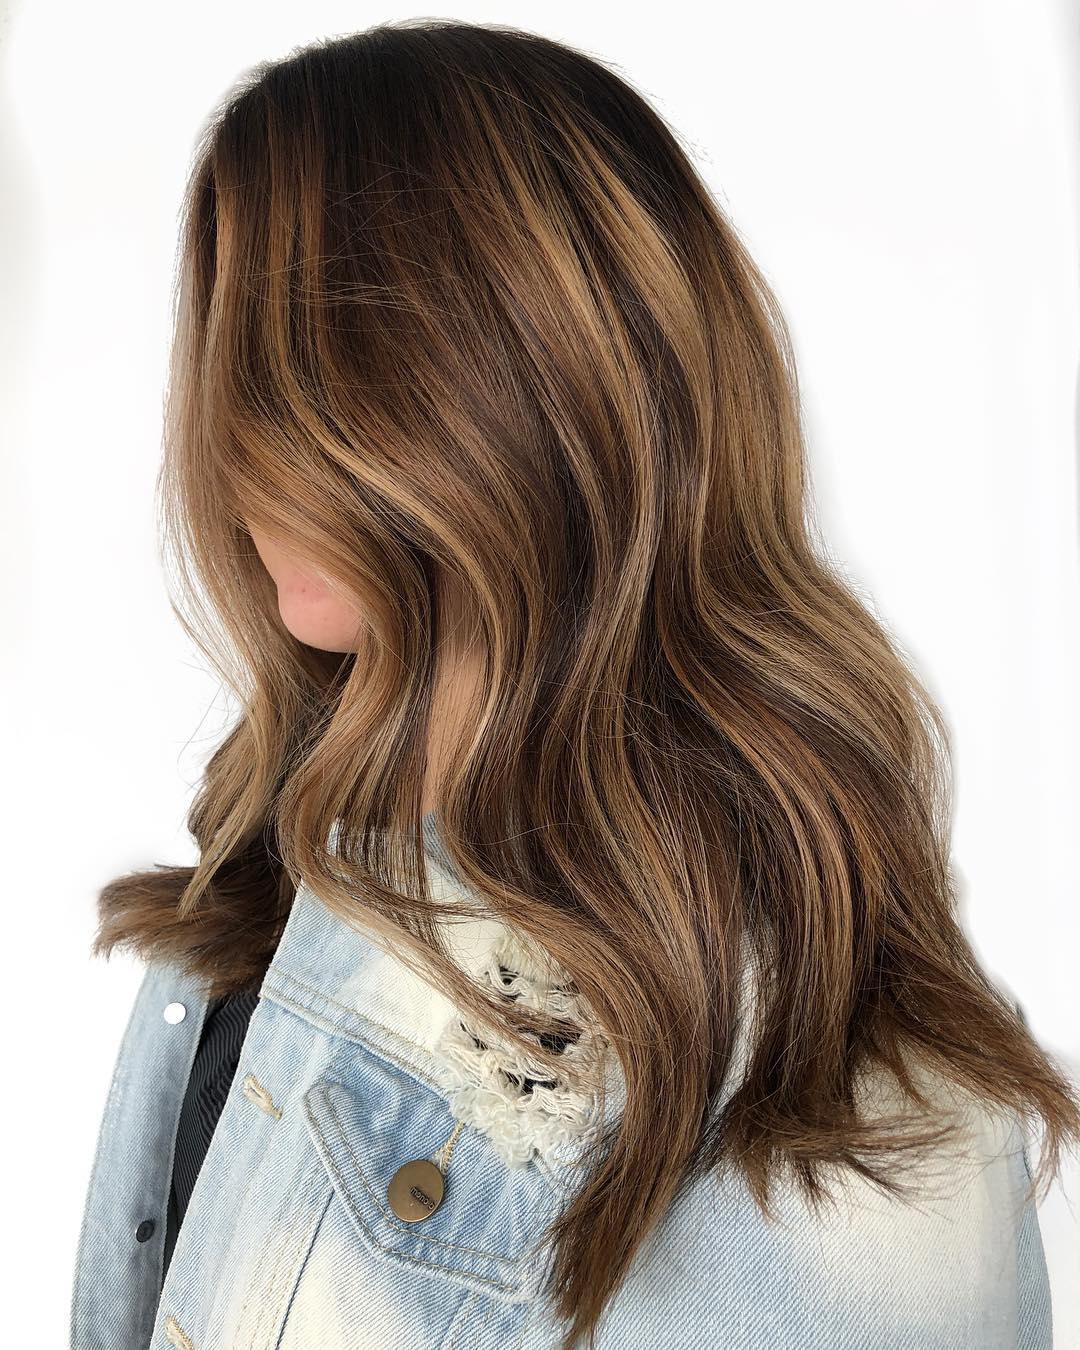 Long Brown Hair with Bronze Highlights